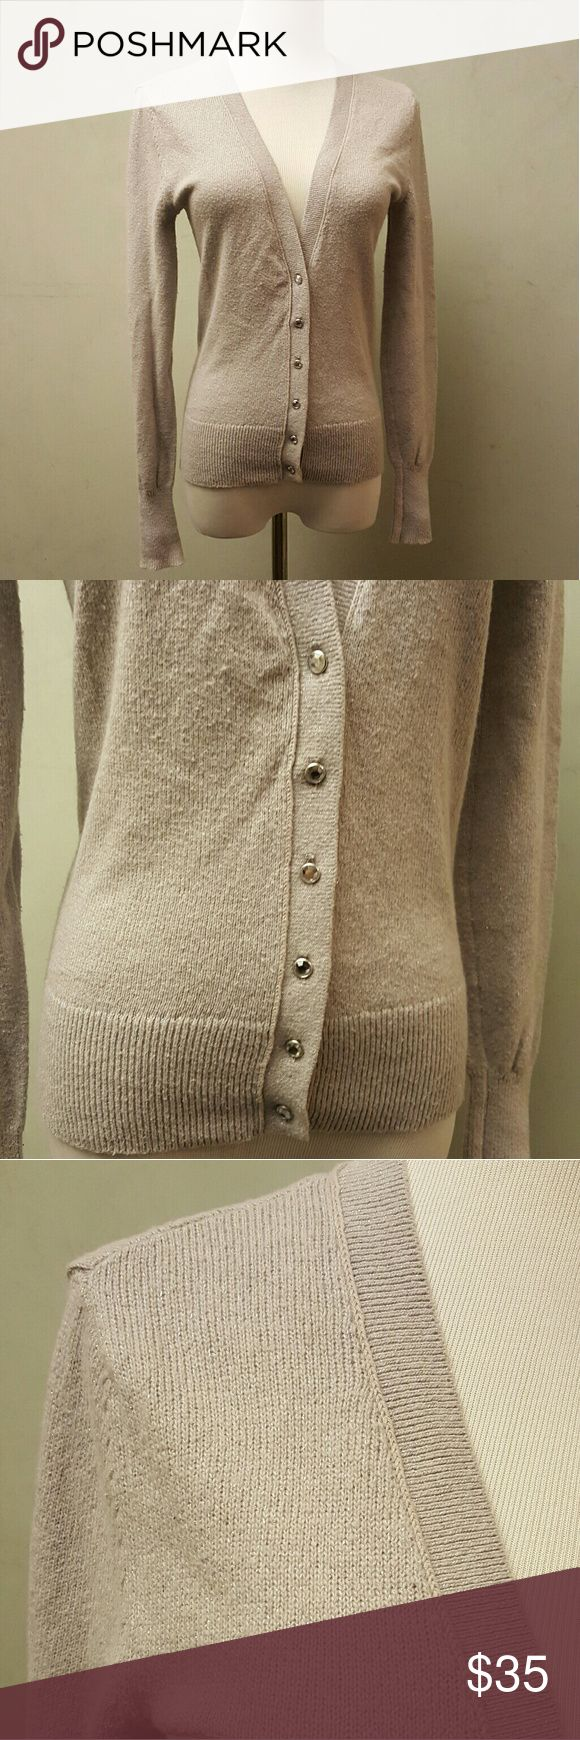 Banana Republic silver cardigan Banana Republic silver cardigan with Crystal buttons in good condition has a shiny Silver Thread going through the knitting Banana Republic Sweaters Cardigans